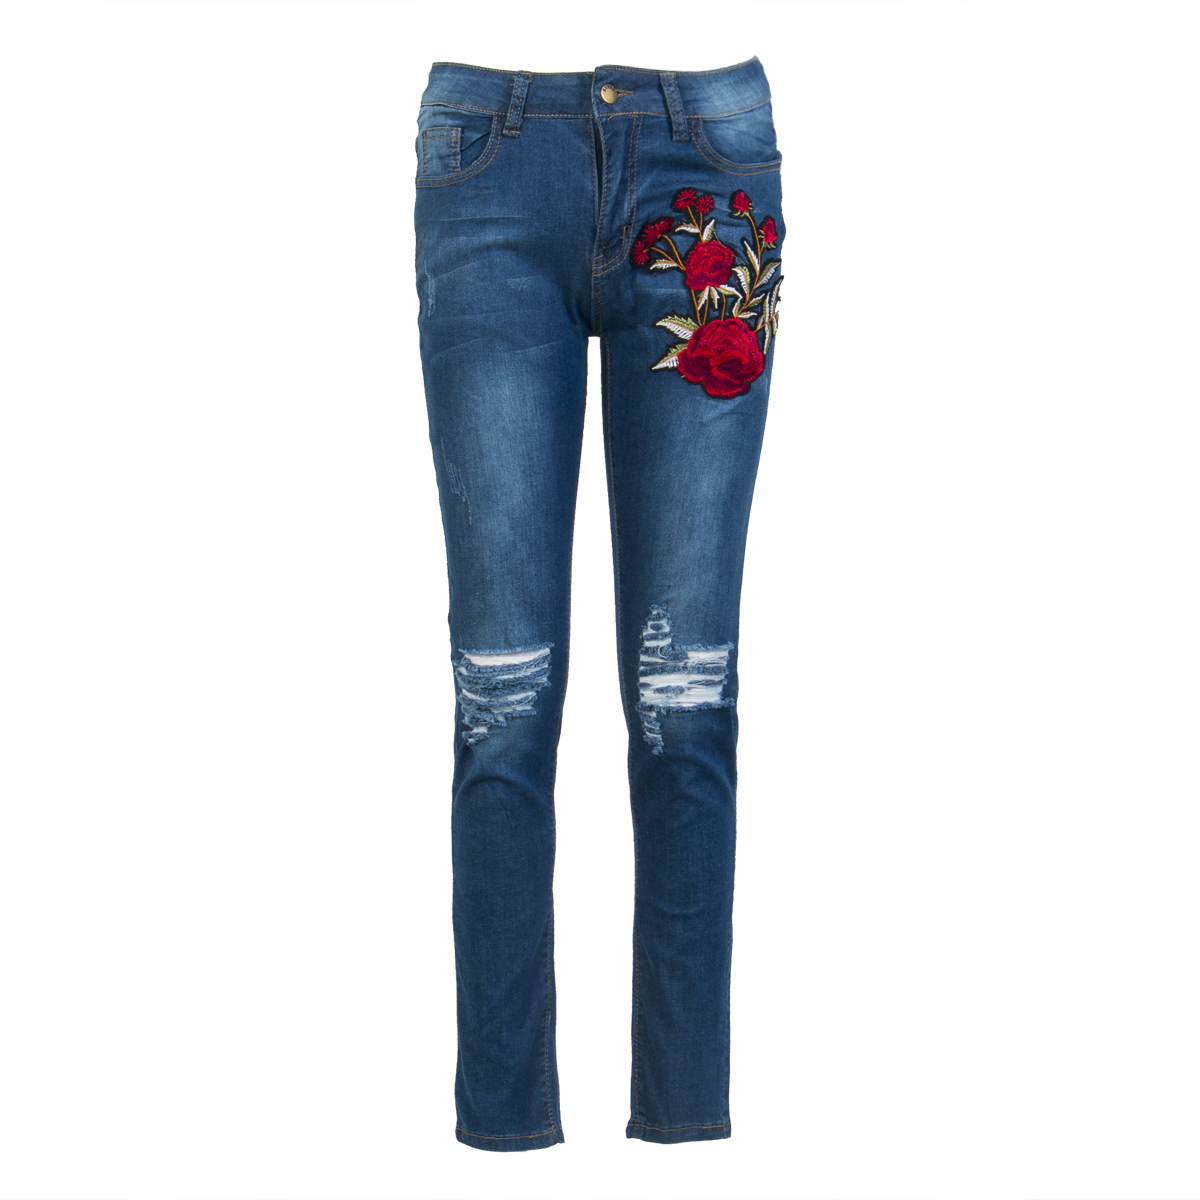 Plus Size Women Denim Skinny Pants High Waist Hole Stretch Trousers Slim Pencil Jeans Stylish Floral Embroidery Pencil Jeans colorful brand large size jeans xl 5xl 2017 spring and summer new hole jeans nine pants high waist was thin slim pants